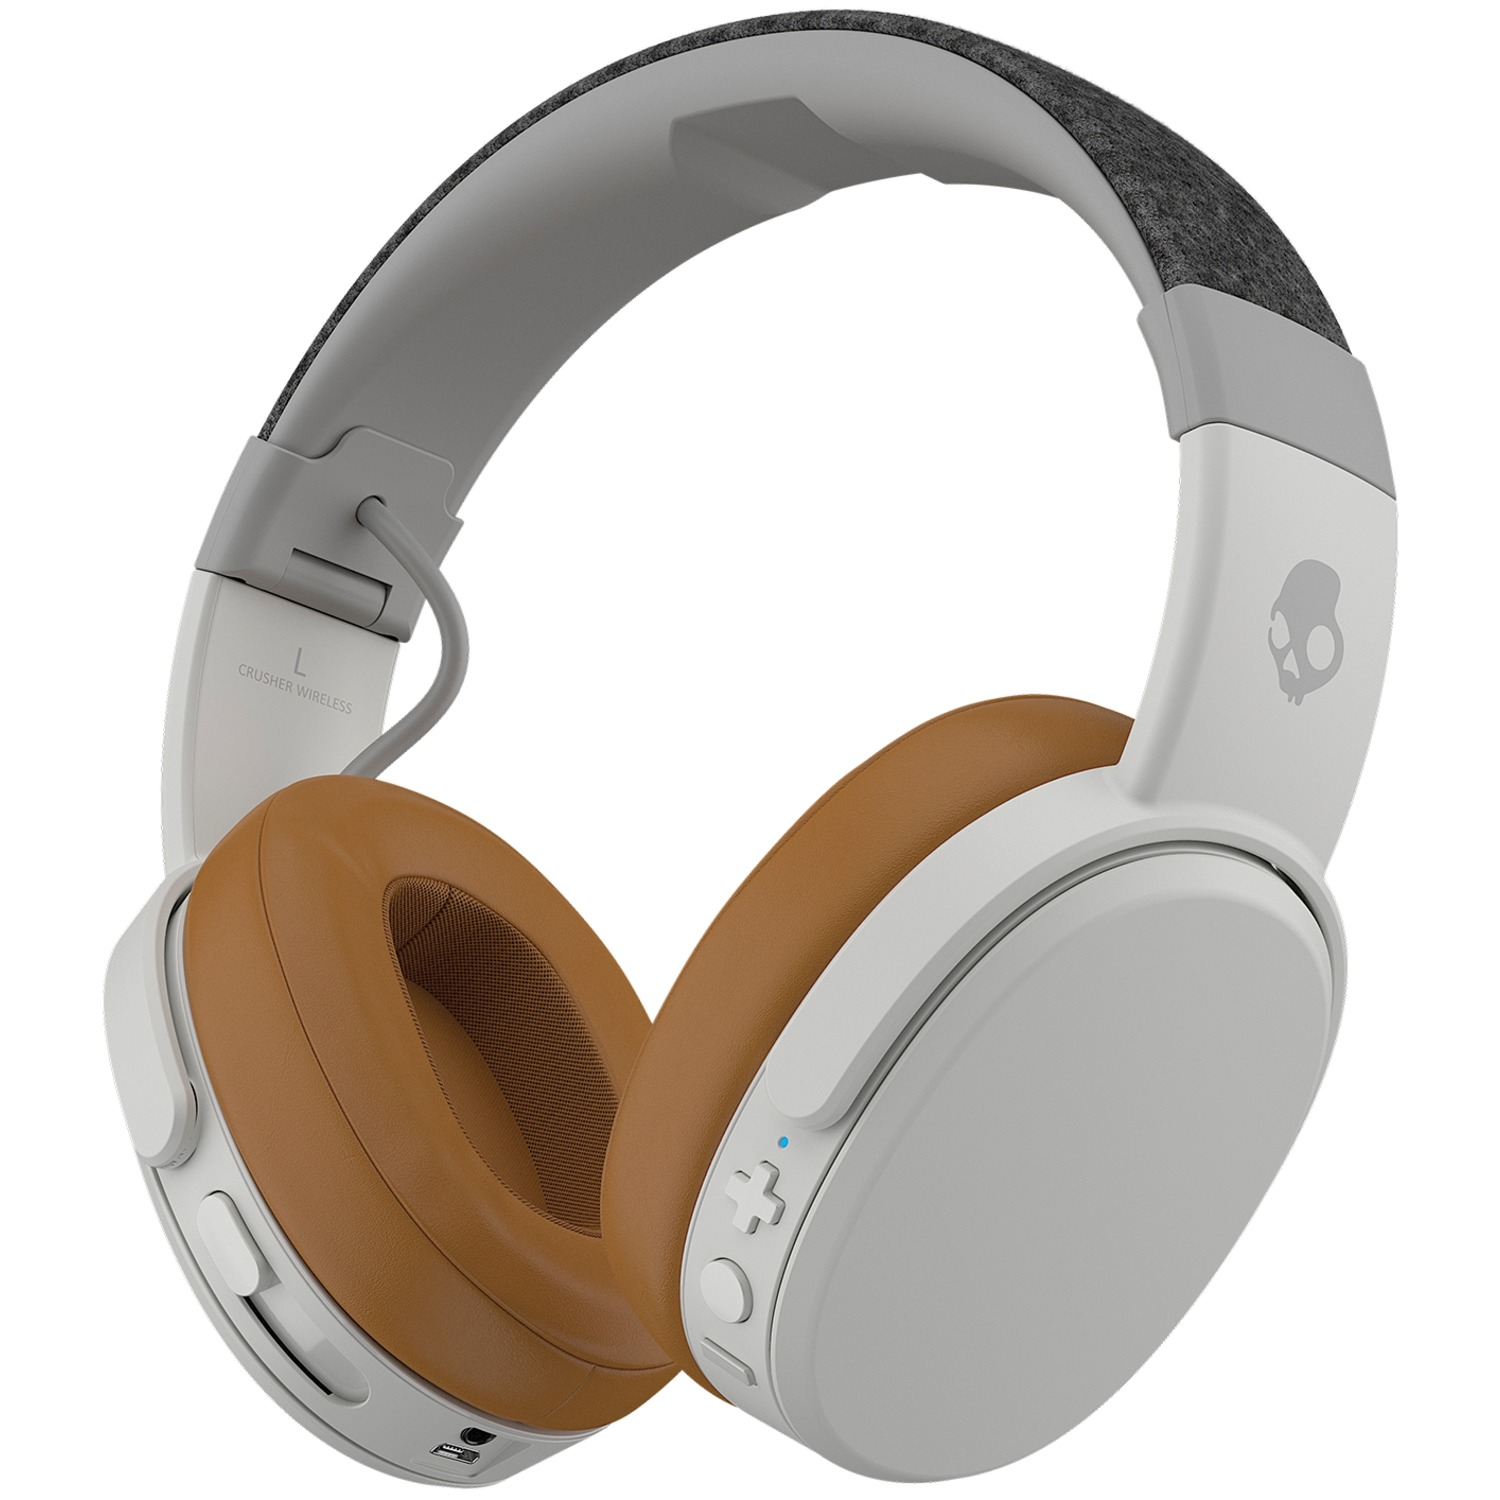 Skullcandy Crusher Wireless, Gray/Tan